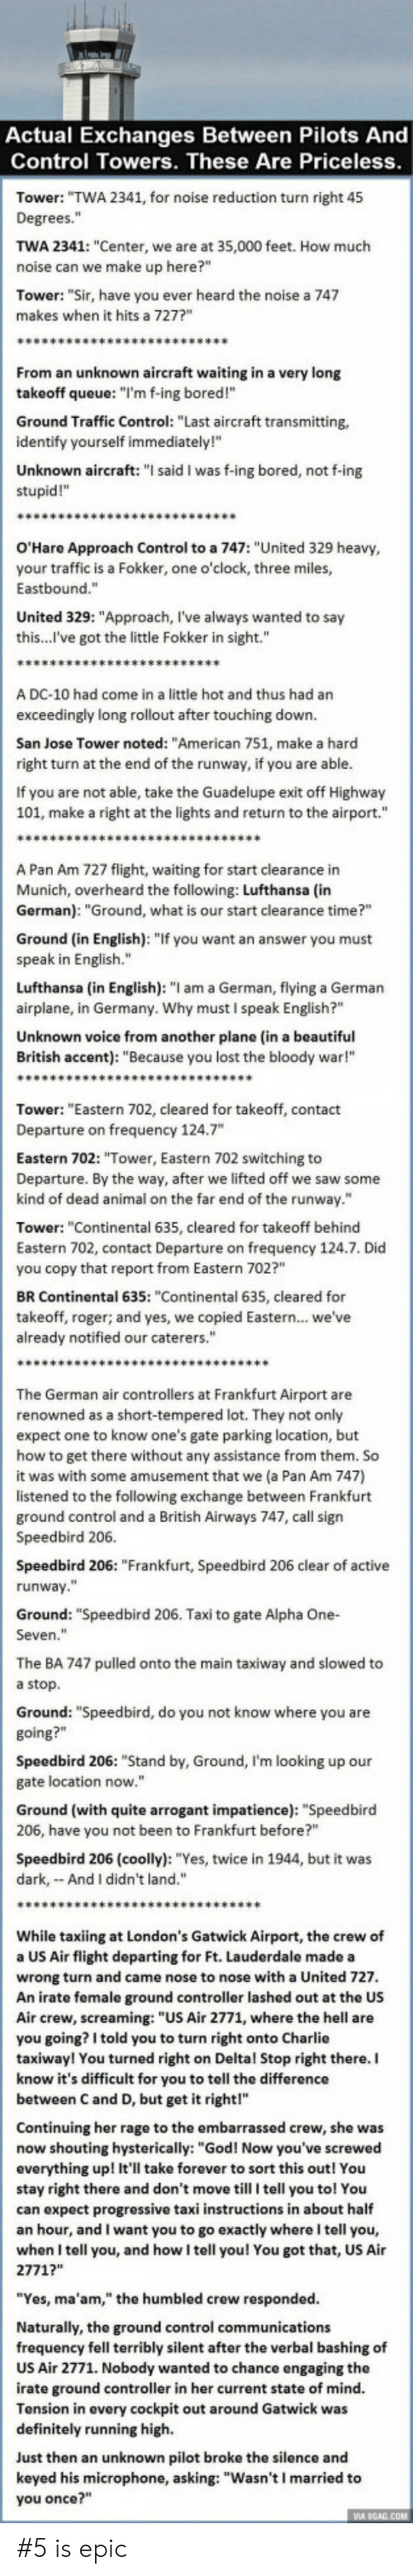 "Renowned: Actual Exchanges Between Pilots And  Control Towers. These Are Priceless  Tower: ""TWA 2341, for noise reduction turn right 45  Degrees.""  TWA 2341: ""Center, we are at 35,000 feet. How much  noise can we make up here?""  Tower: ""Sir, have you ever heard the noise a 747  makes when it hits a 727?  From an unknown aircraft waiting in a very long  takeoff queue: ""I'm f-ing bored!""  Ground Traffic Control: ""Last aircraft transmitting,  identify yourself immediately!""  Unknown aircraft: "" said I was f-ing bored, not f-ing  stupid!""  O'Hare Approach Control to a 747: ""United 329 heavy  your traffic is a Fokker, one o'clock, three miles,  Eastbound.""  United 329: ""Approach, l've always wanted to say  this...l've got the little Fokker in sight.""  A DC-10 had come in a little hot and thus had an  exceedingly long rollout after touching down.  San Jose Tower noted: ""American 751, make a harcd  right turn at the end of the runway, if you are able  If you are not able, take the Guadelupe exit off Highway  101, make a right at the lights and return to the airport.""  A Pan Am 727 flight, waiting for start clearance in  Munich, overheard the following: Lufthansa (in  German): ""Ground, what is our start clearance time?""  Ground (in English): ""If you want an answer you must  speak in English.""  Lufthansa (in English): ""I am a German, flying a German  airplane, in Germany. Why must I speak English?""  Unknown voice from another plane (in a beautiful  British accent): ""Because you lost the bloody war!""  Tower: ""Eastern 702, cleared for takeoff, contact  Departure on frequency 124.7  Eastern 702: ""Tower, Eastern 702 switching to  Departure. By the way, after we lifted off we saw some  kind of dead animal on the far end of the runway.""  Tower: ""Continental 635, cleared for takeoff behind  Eastern 702, contact Departure on frequency 124.7. Did  you copy that report from Eastern 702?""  BR Continental 635: ""Continental 635, cleared for  takeoff, roger; and yes, we copied Eastern... we've  already notified our caterers.""  The German air controllers at Frankfurt Airport are  renowned as a short-tempered lot. They not only  expect one to know one's gate parking location, but  how to get there without any assistance from them. So  it was with some amusement that we (a Pan Am 747)  listened to the following exchange between Frankfurt  ground control and a British Airways 747, call sign  Speedbird 206.  Speedbird 206: ""Frankfurt, Speedbird 206 clear of active  runway  Ground: ""Speedbird 206. Taxi to gate Alpha One-  Seven.""  The BA 747 pulled onto the main taxiway and slowed to  a stop  Ground: ""Speedbird, do you not know where you are  Speedbird 206: ""Stand by, Ground, I'm looking up our  gate location now.""  Ground (with quite arrogant impatience): ""Speedbird  206, have you not been to Frankfurt before?""  Speedbird 206 (coolly): ""Yes, twice in 1944, but it was  dark, And I didn't land.""  While taxiing at London's Gatwick Airport, the crew of  a US Air flight departing for Ft. Lauderdale made a  wrong turn and came nose to nose with a United 727  An irate female ground controller lashed out at the US  Air crew, screaming: ""US Air 2771, where the hell are  you going? I told you to turn right onto Charlie  taxiway! You turned right on Deltal Stop right there. I  know it's difficult for you to tell the difference  between C and D, but get it right!""  Continuing her rage to the embarrassed crew, she was  now shouting hysterically: ""God! Now you've screwed  everything up! It'll take forever to sort this out! You  stay right there and don't move till I tell you tol You  can expect progressive taxi instructions in about half  an hour, and I want you to go exactly whereI tell you,  when I tell you, and how I tell you! You got that, US Air  2771?""  ""Yes, ma'am,"" the humbled crew responded.  Naturally, the ground control communications  frequency fell terribly silent after the verbal bashing of  US Air 2771. Nobody wanted to chance engaging the  irate ground controller in her current state of mind.  Tension in every cockpit out around Gatwick was  definitely running high.  Just then an unknown pilot broke the silence and  keyed his microphone, asking: ""Wasn't I married to  you once?"" #5 is epic"